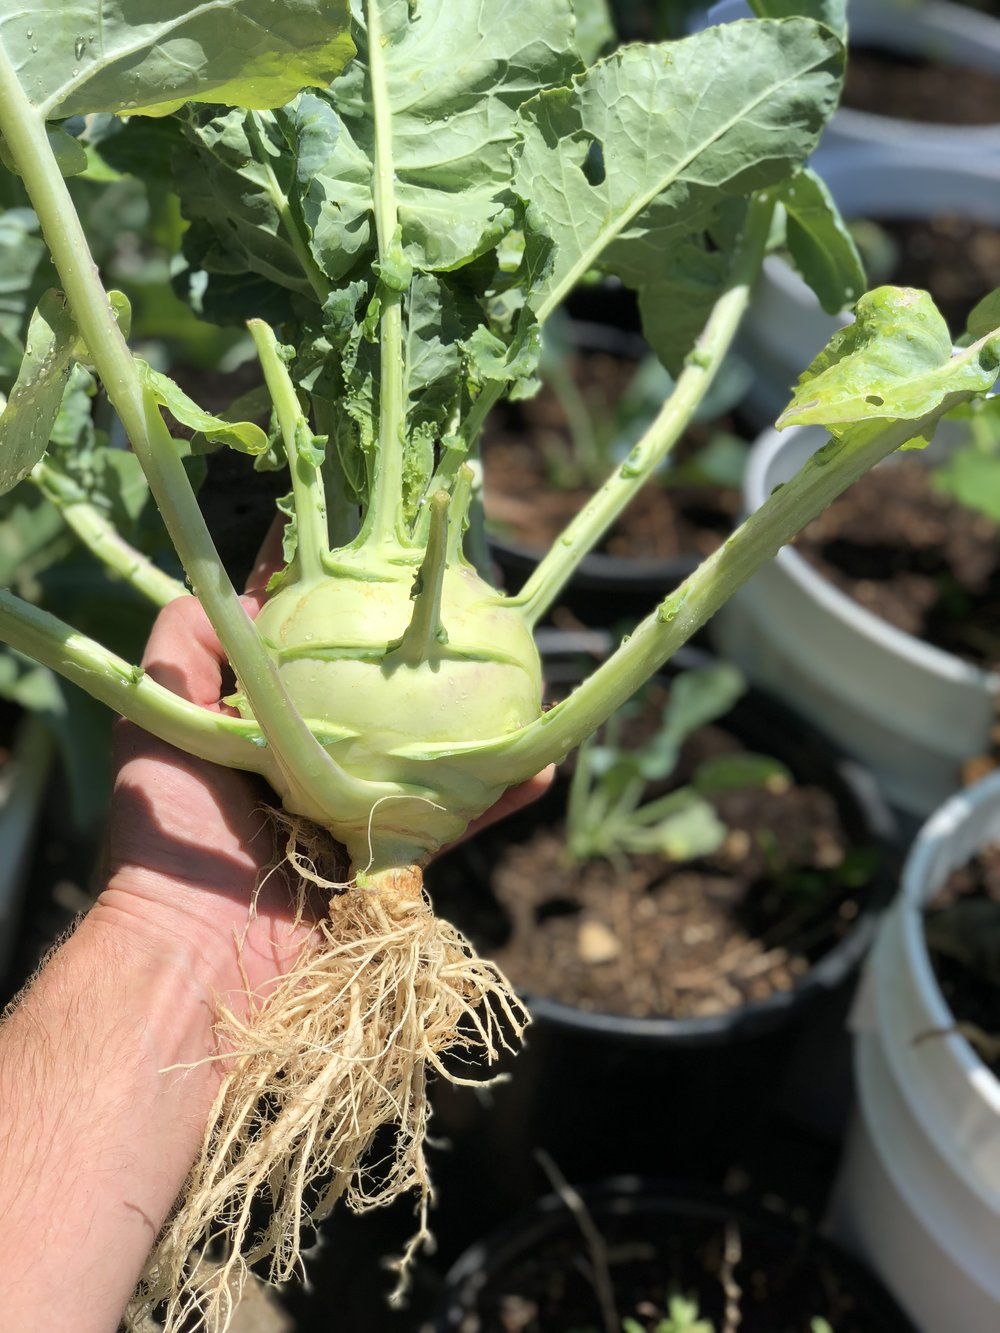 Even the giant 'Superschmelz' kohlrabi grows well in containers. This beauty grew quickly and I'm constantly keeping seeds sprouting for a perpetual harvest. They are SO delicious roasted.